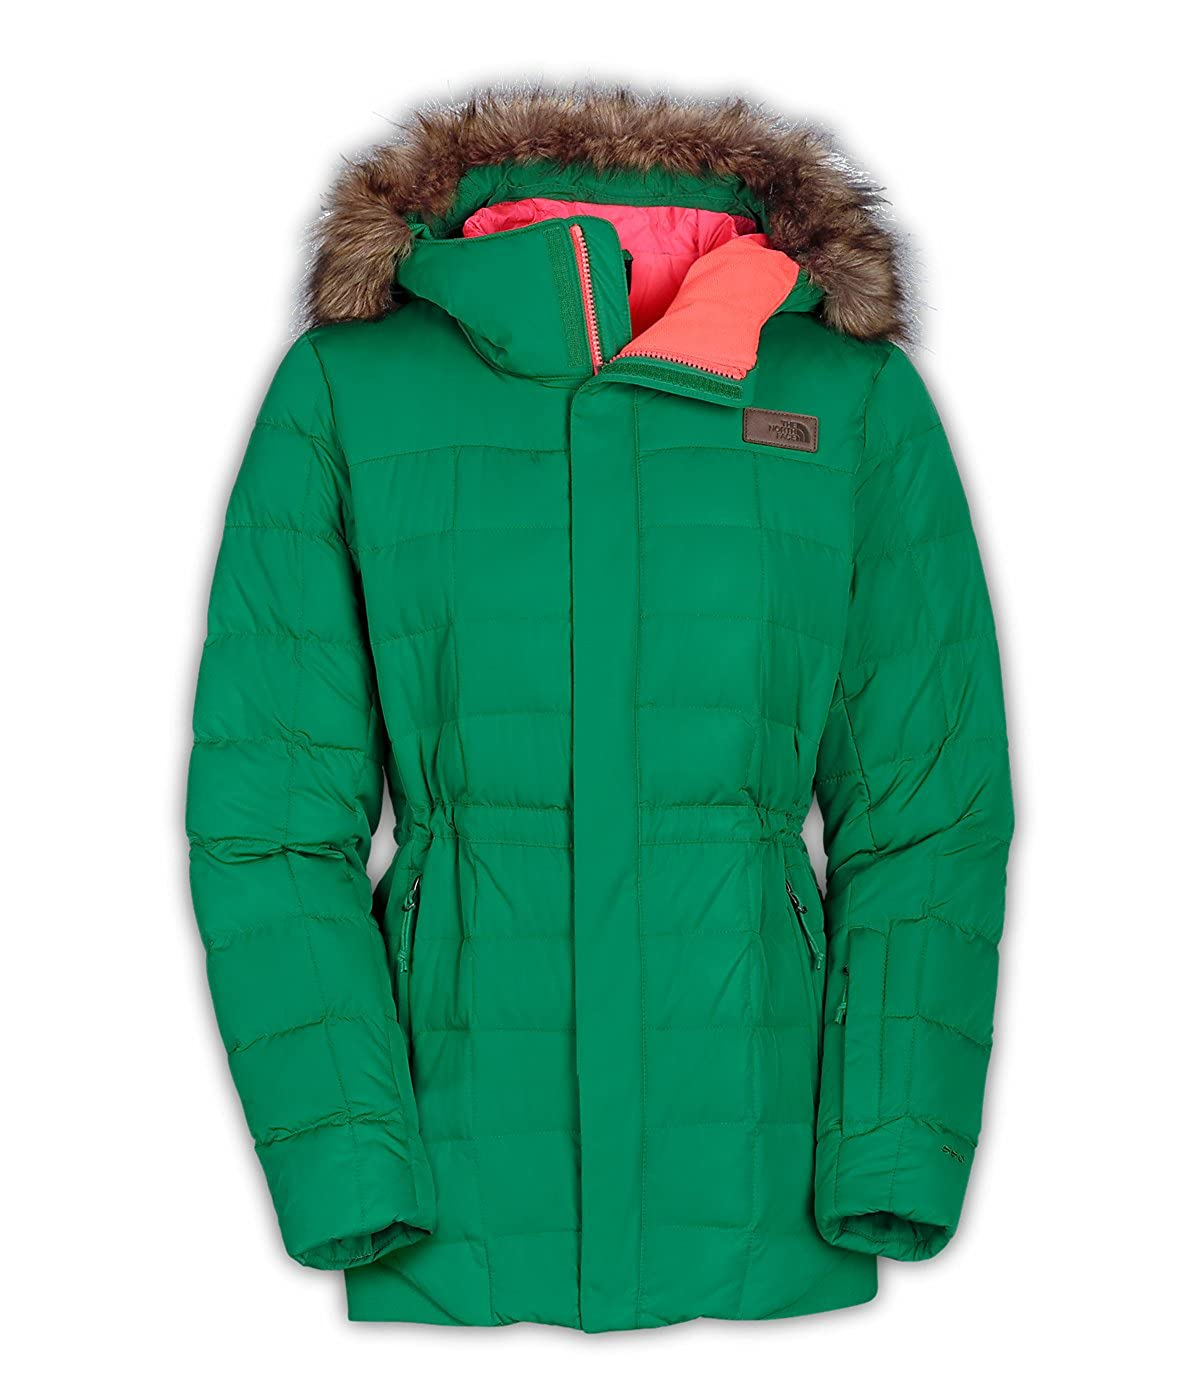 9f183f24c839 THE NORTH FACE WOMEN S BEATTY S DELUXE INSULATED JACKET SZ MEDIUM (GREEN)   Amazon.ca  Sports   Outdoors